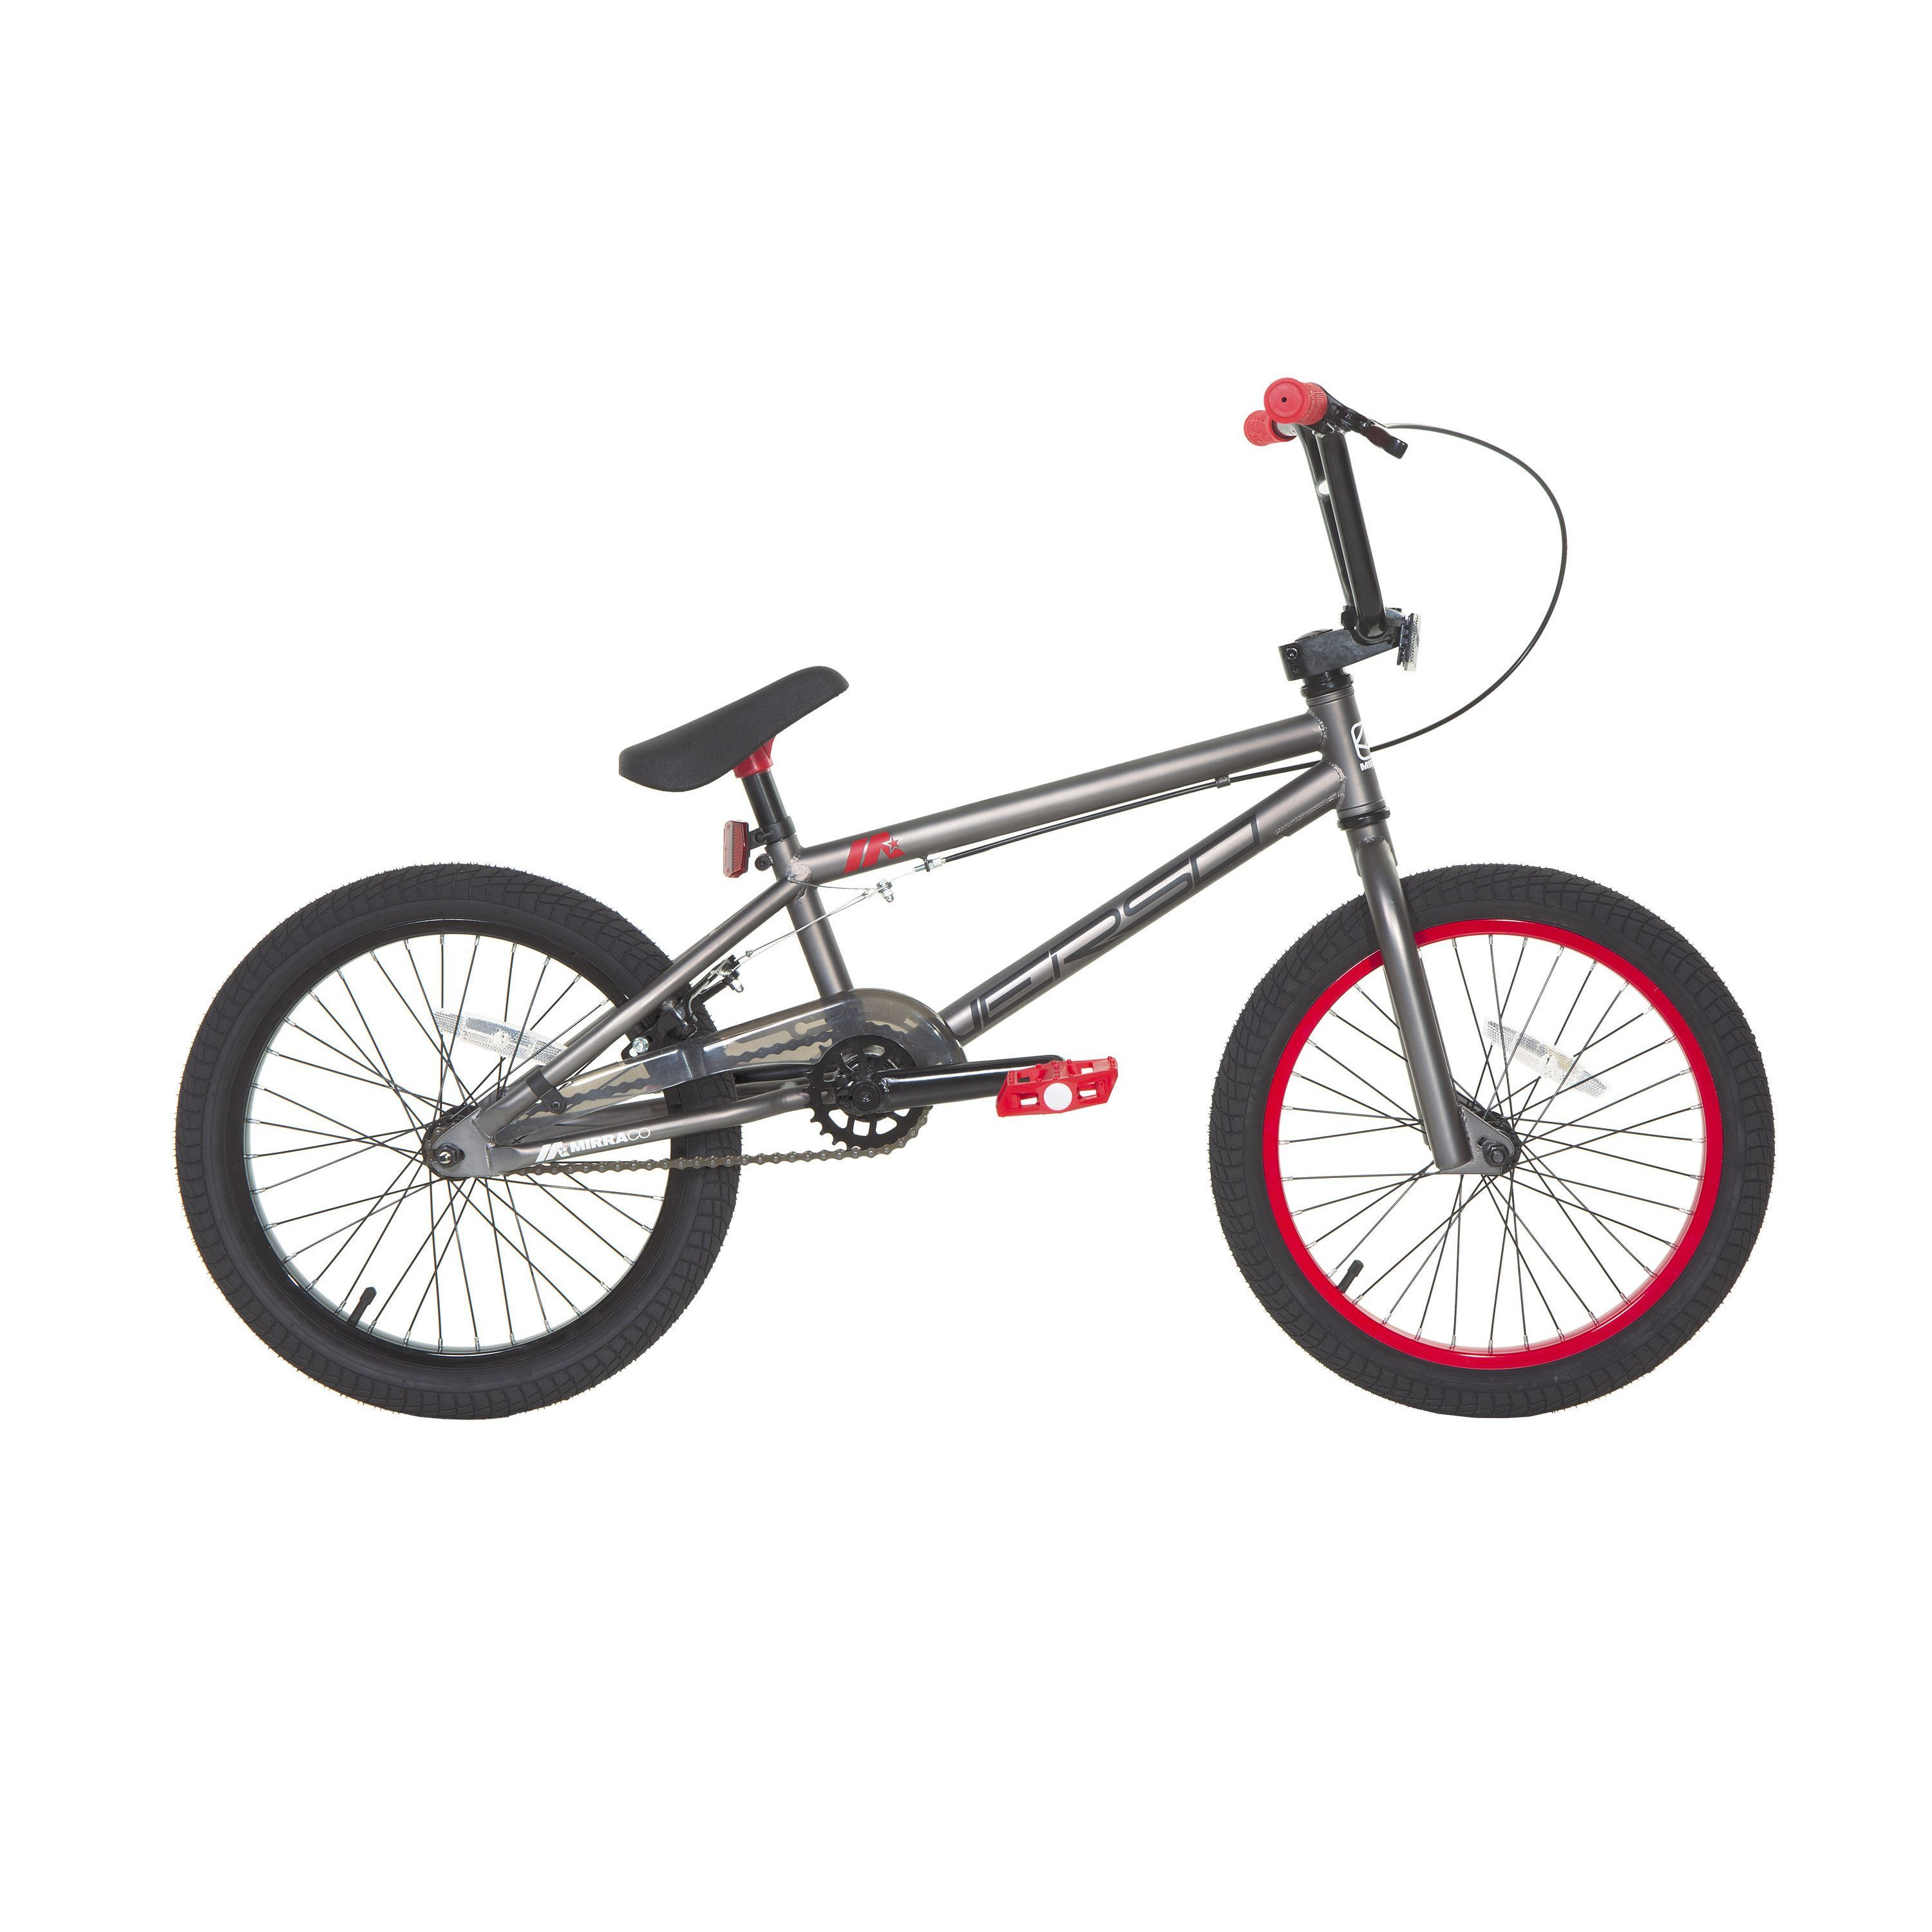 20 inch BMX Street Dirt Bike For Teen Boy Kid Steel Frame Bicycle Christmas Gift